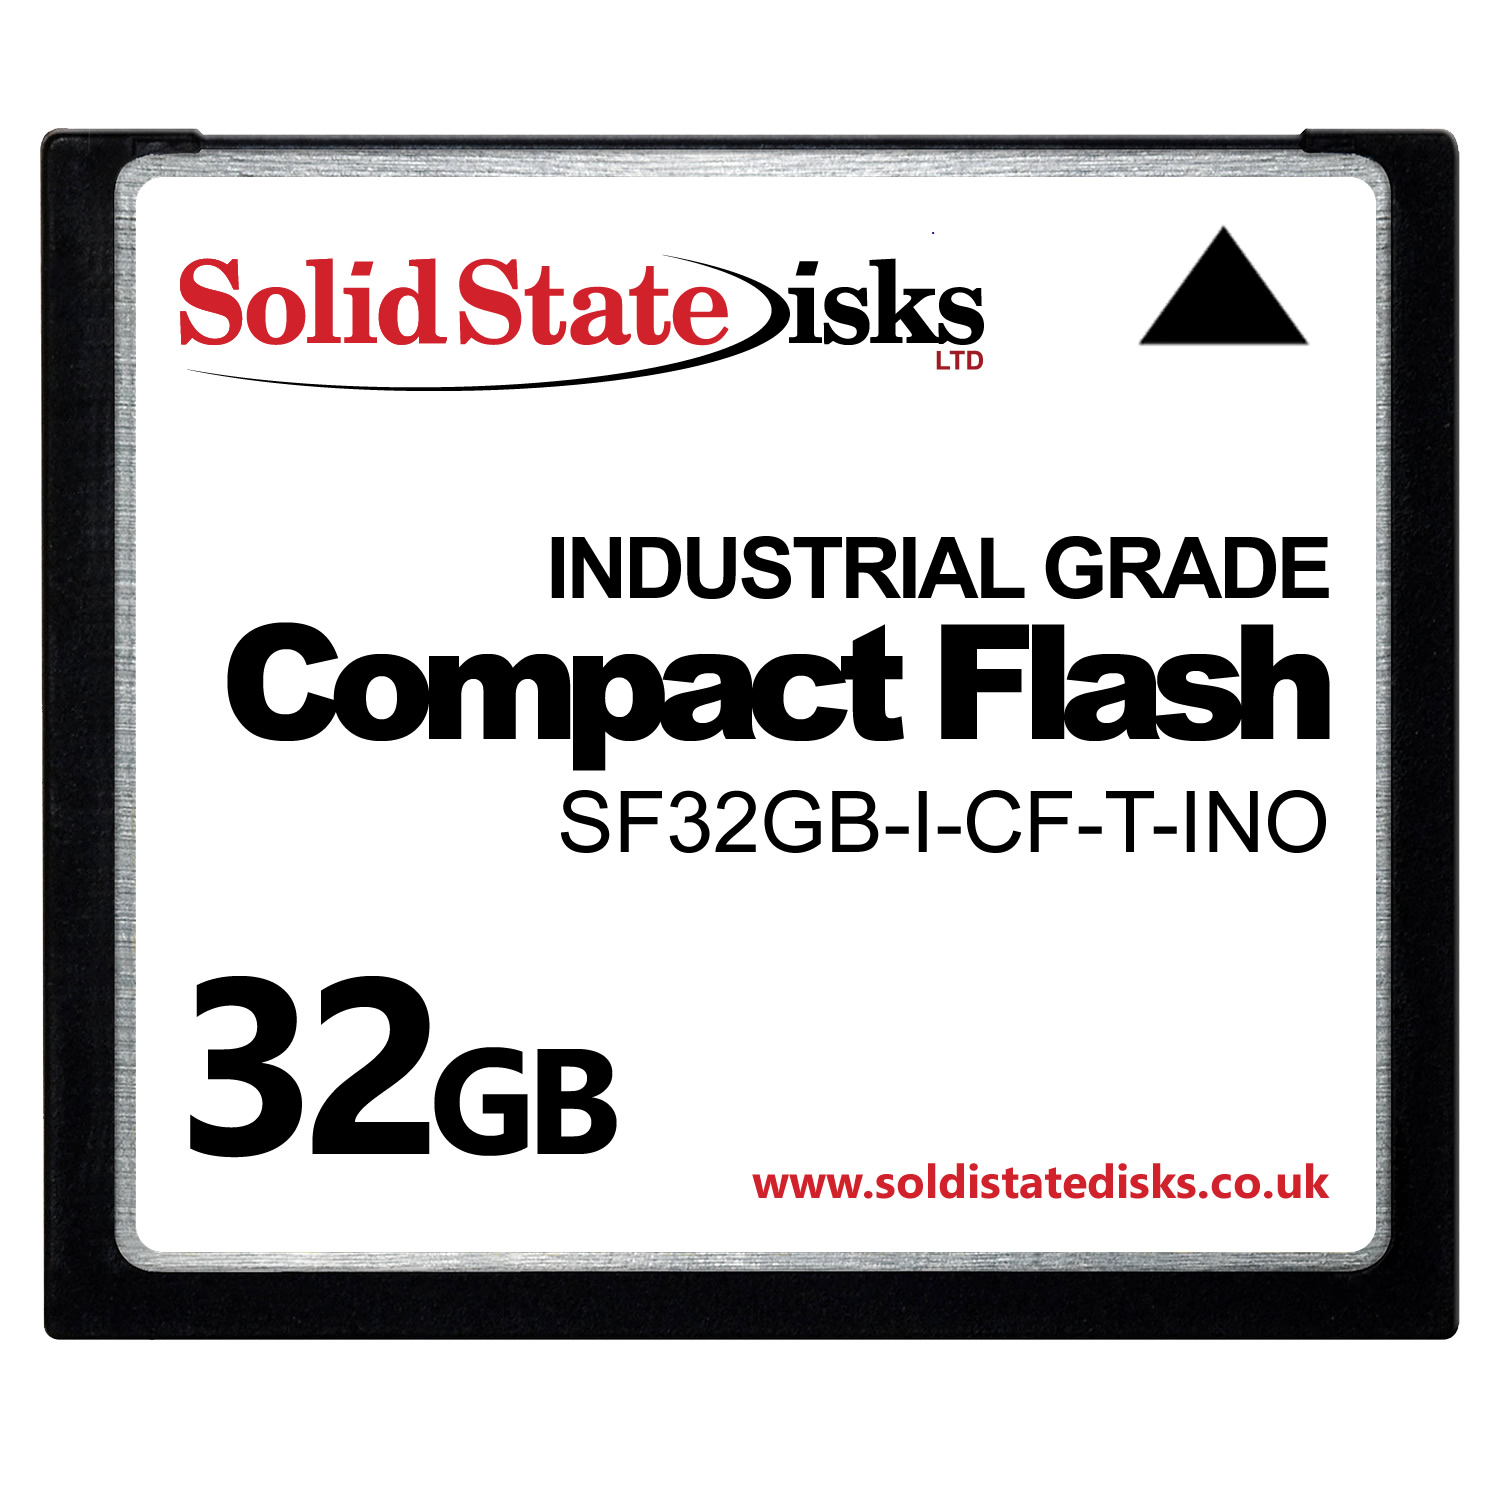 SCSIFLASH-CF Industrial Grade Compact Flash Card